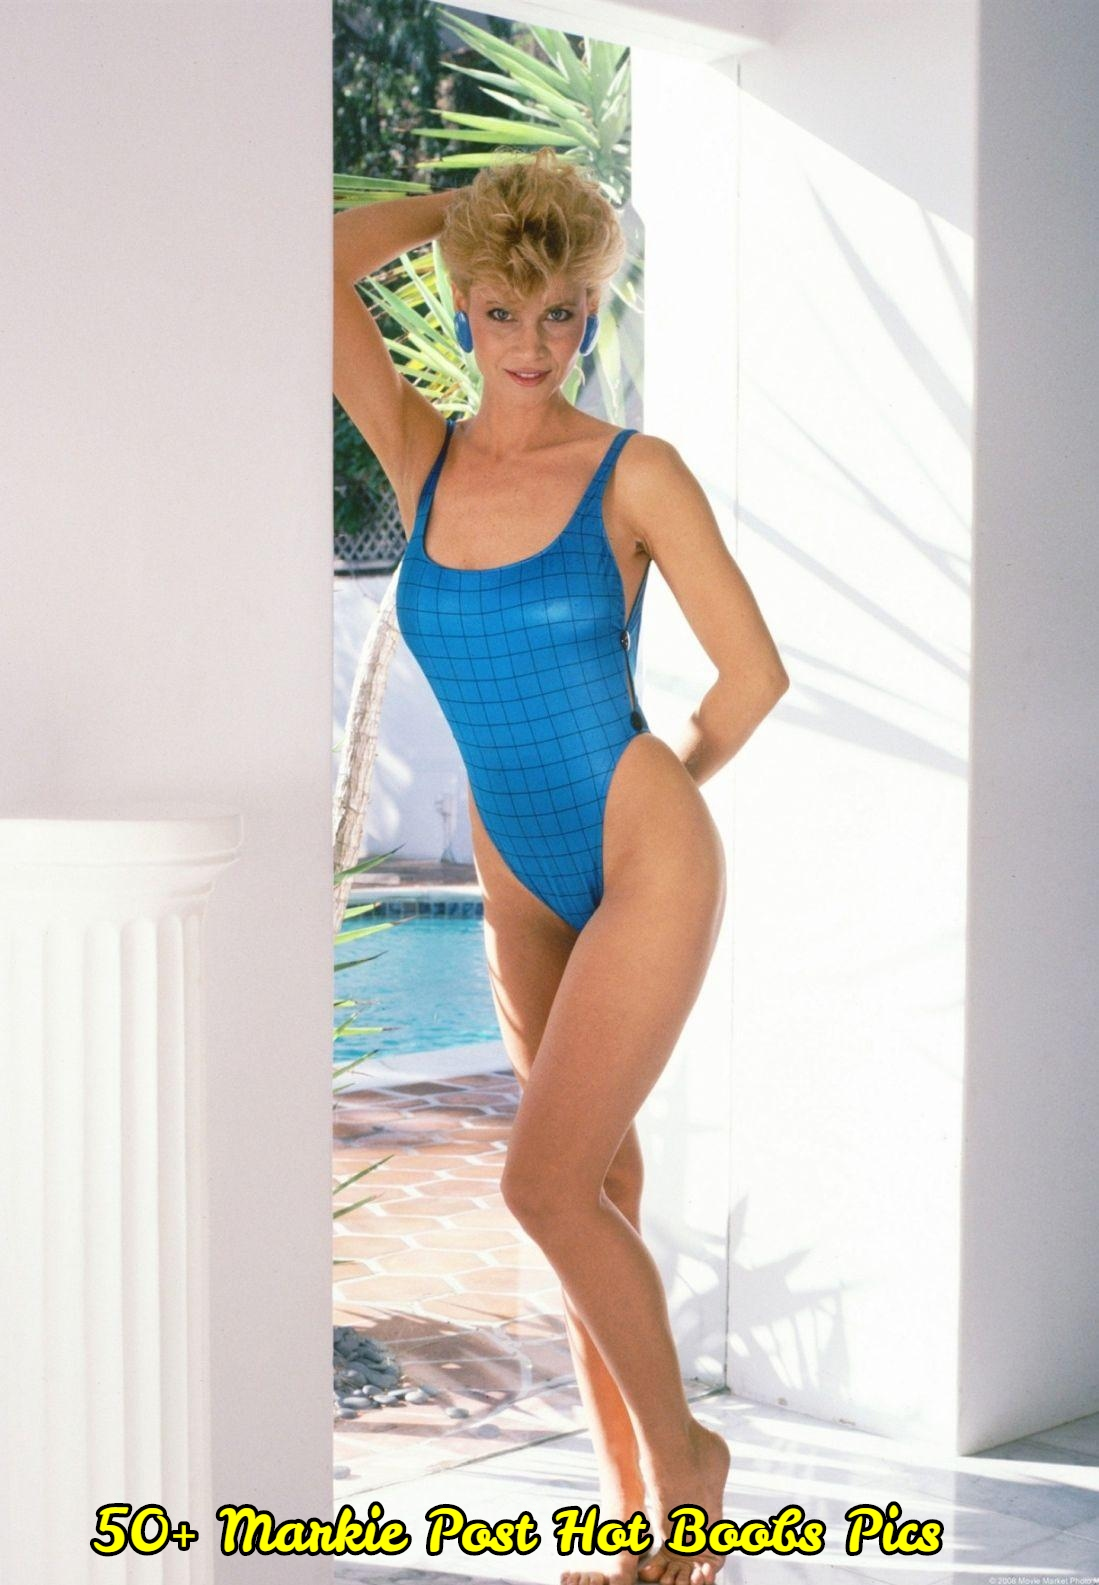 Markie Post hot pictures